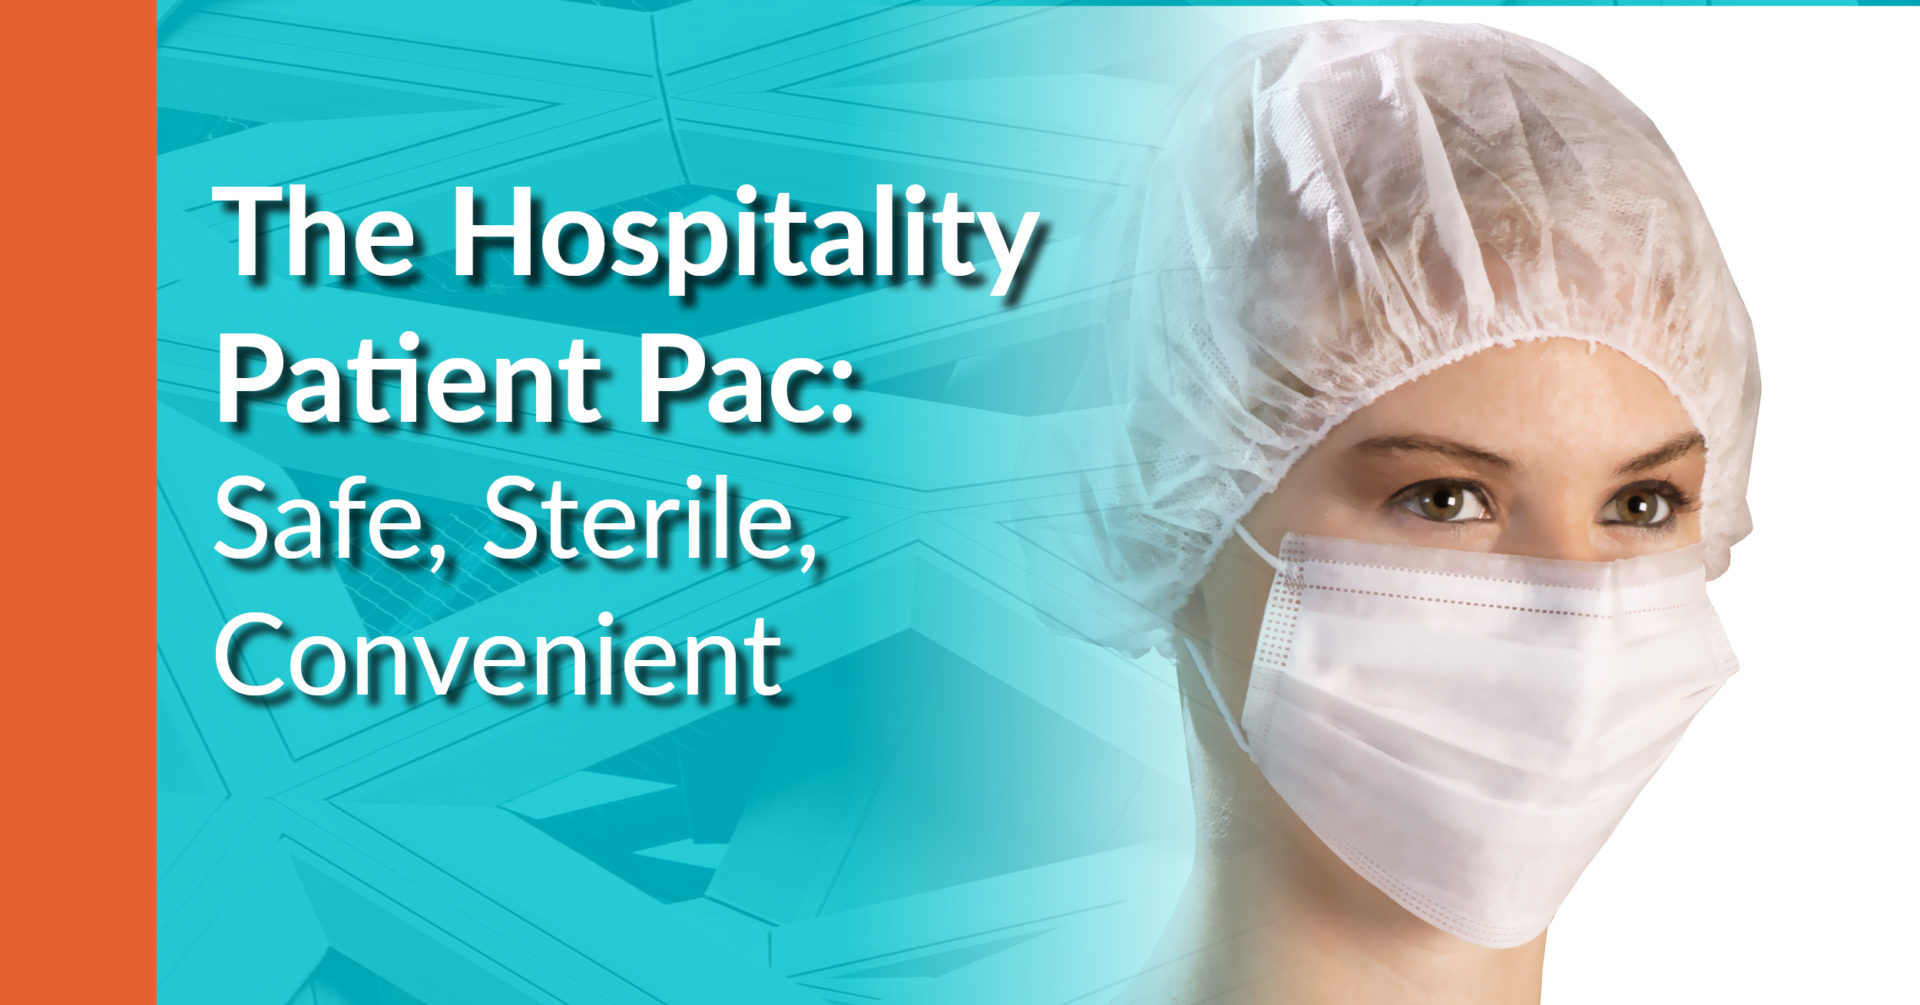 """A blue background with a woman wearing a protective face mask and cap, with text """"The Hospitality Patient Pac: Safe, Sterile, Convenient."""""""